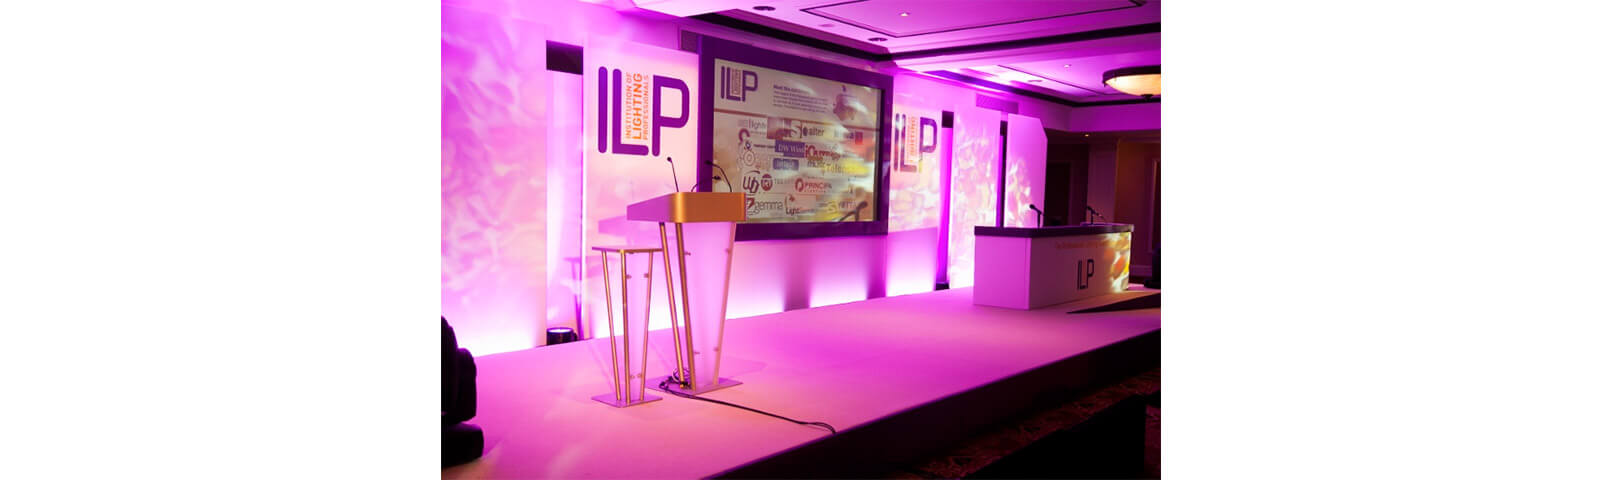 TRT at the ILP Professional Lighting Summit gallery image